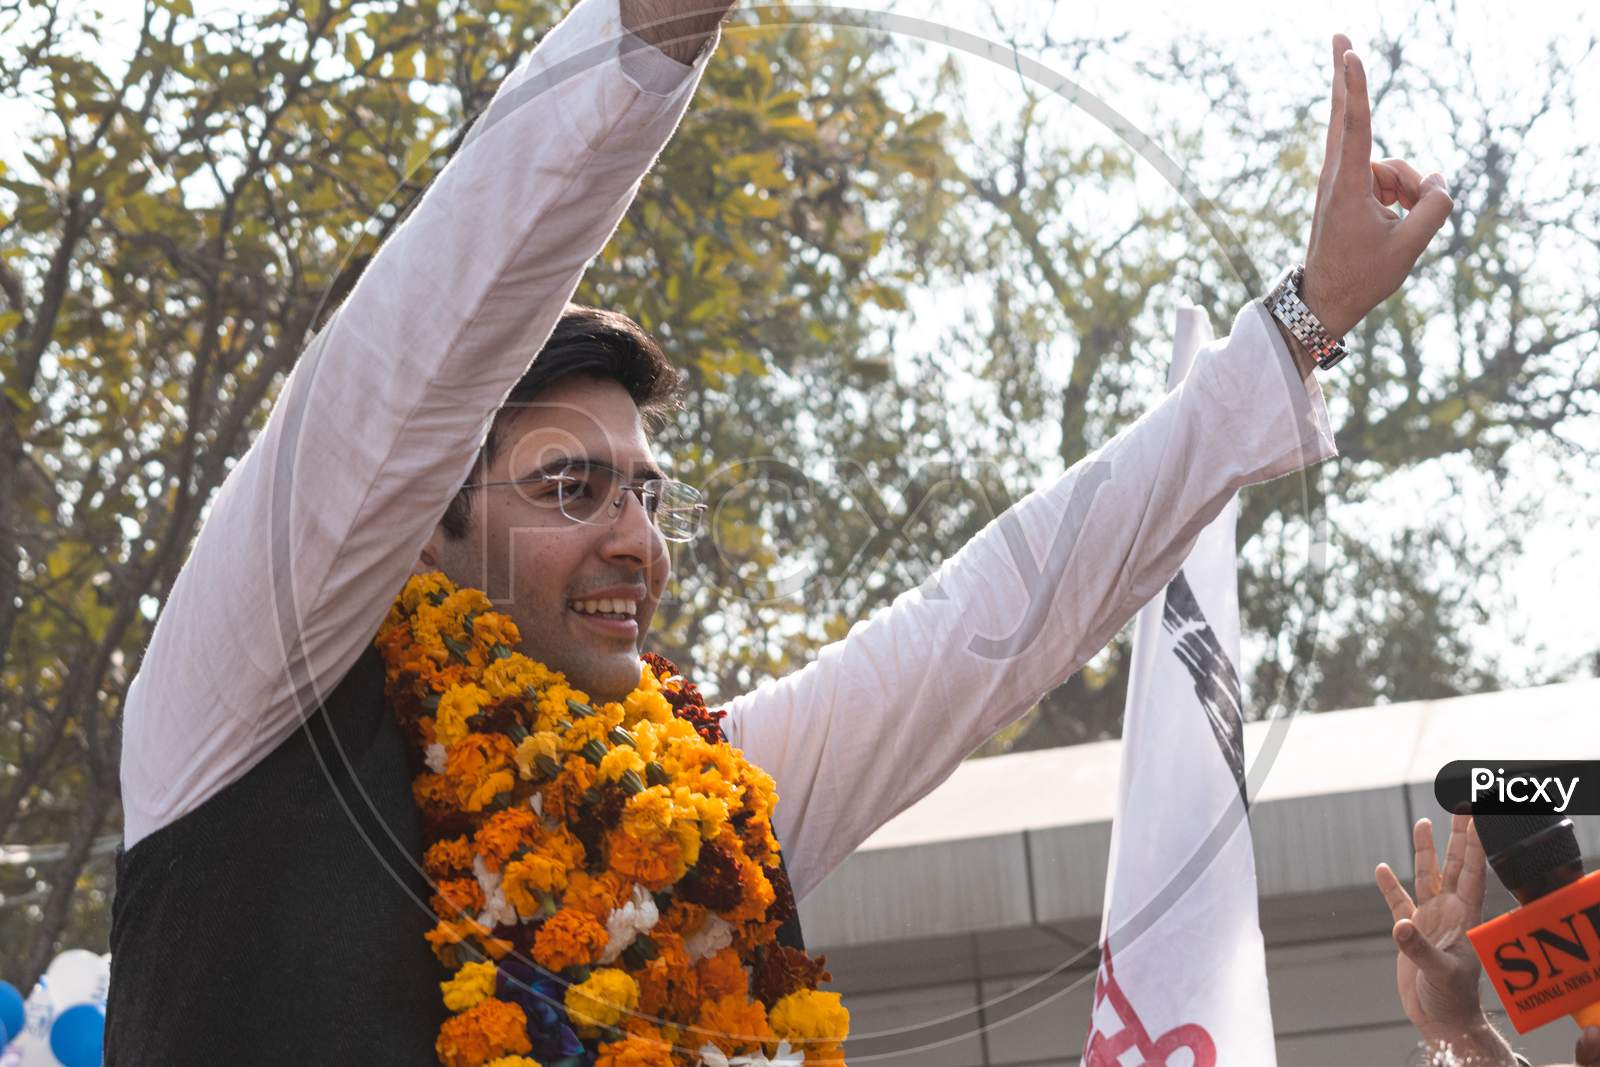 Raghav Chadha, Aam Aadmi Party AAP MLA, 7th Legislative Assembly, Delhi, Celebrating after victory in Delhi Assembly Election 2020